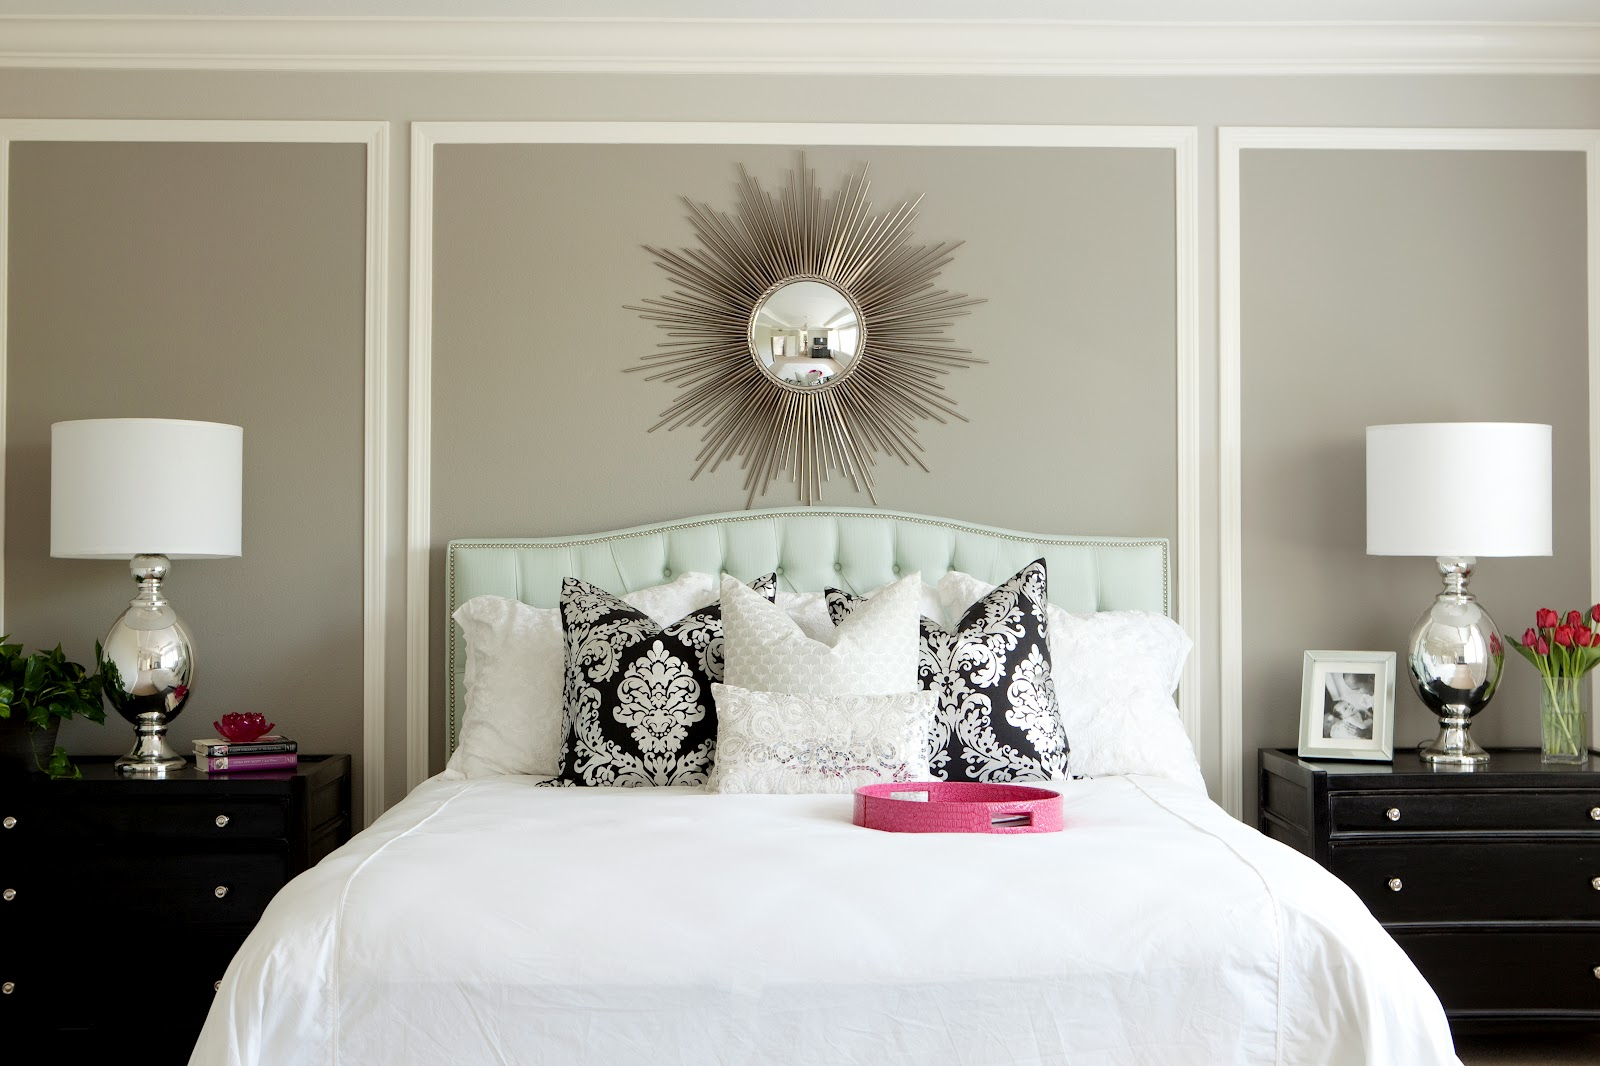 Bdg style two shades of grey - Wall painting ideas for bedroom ...